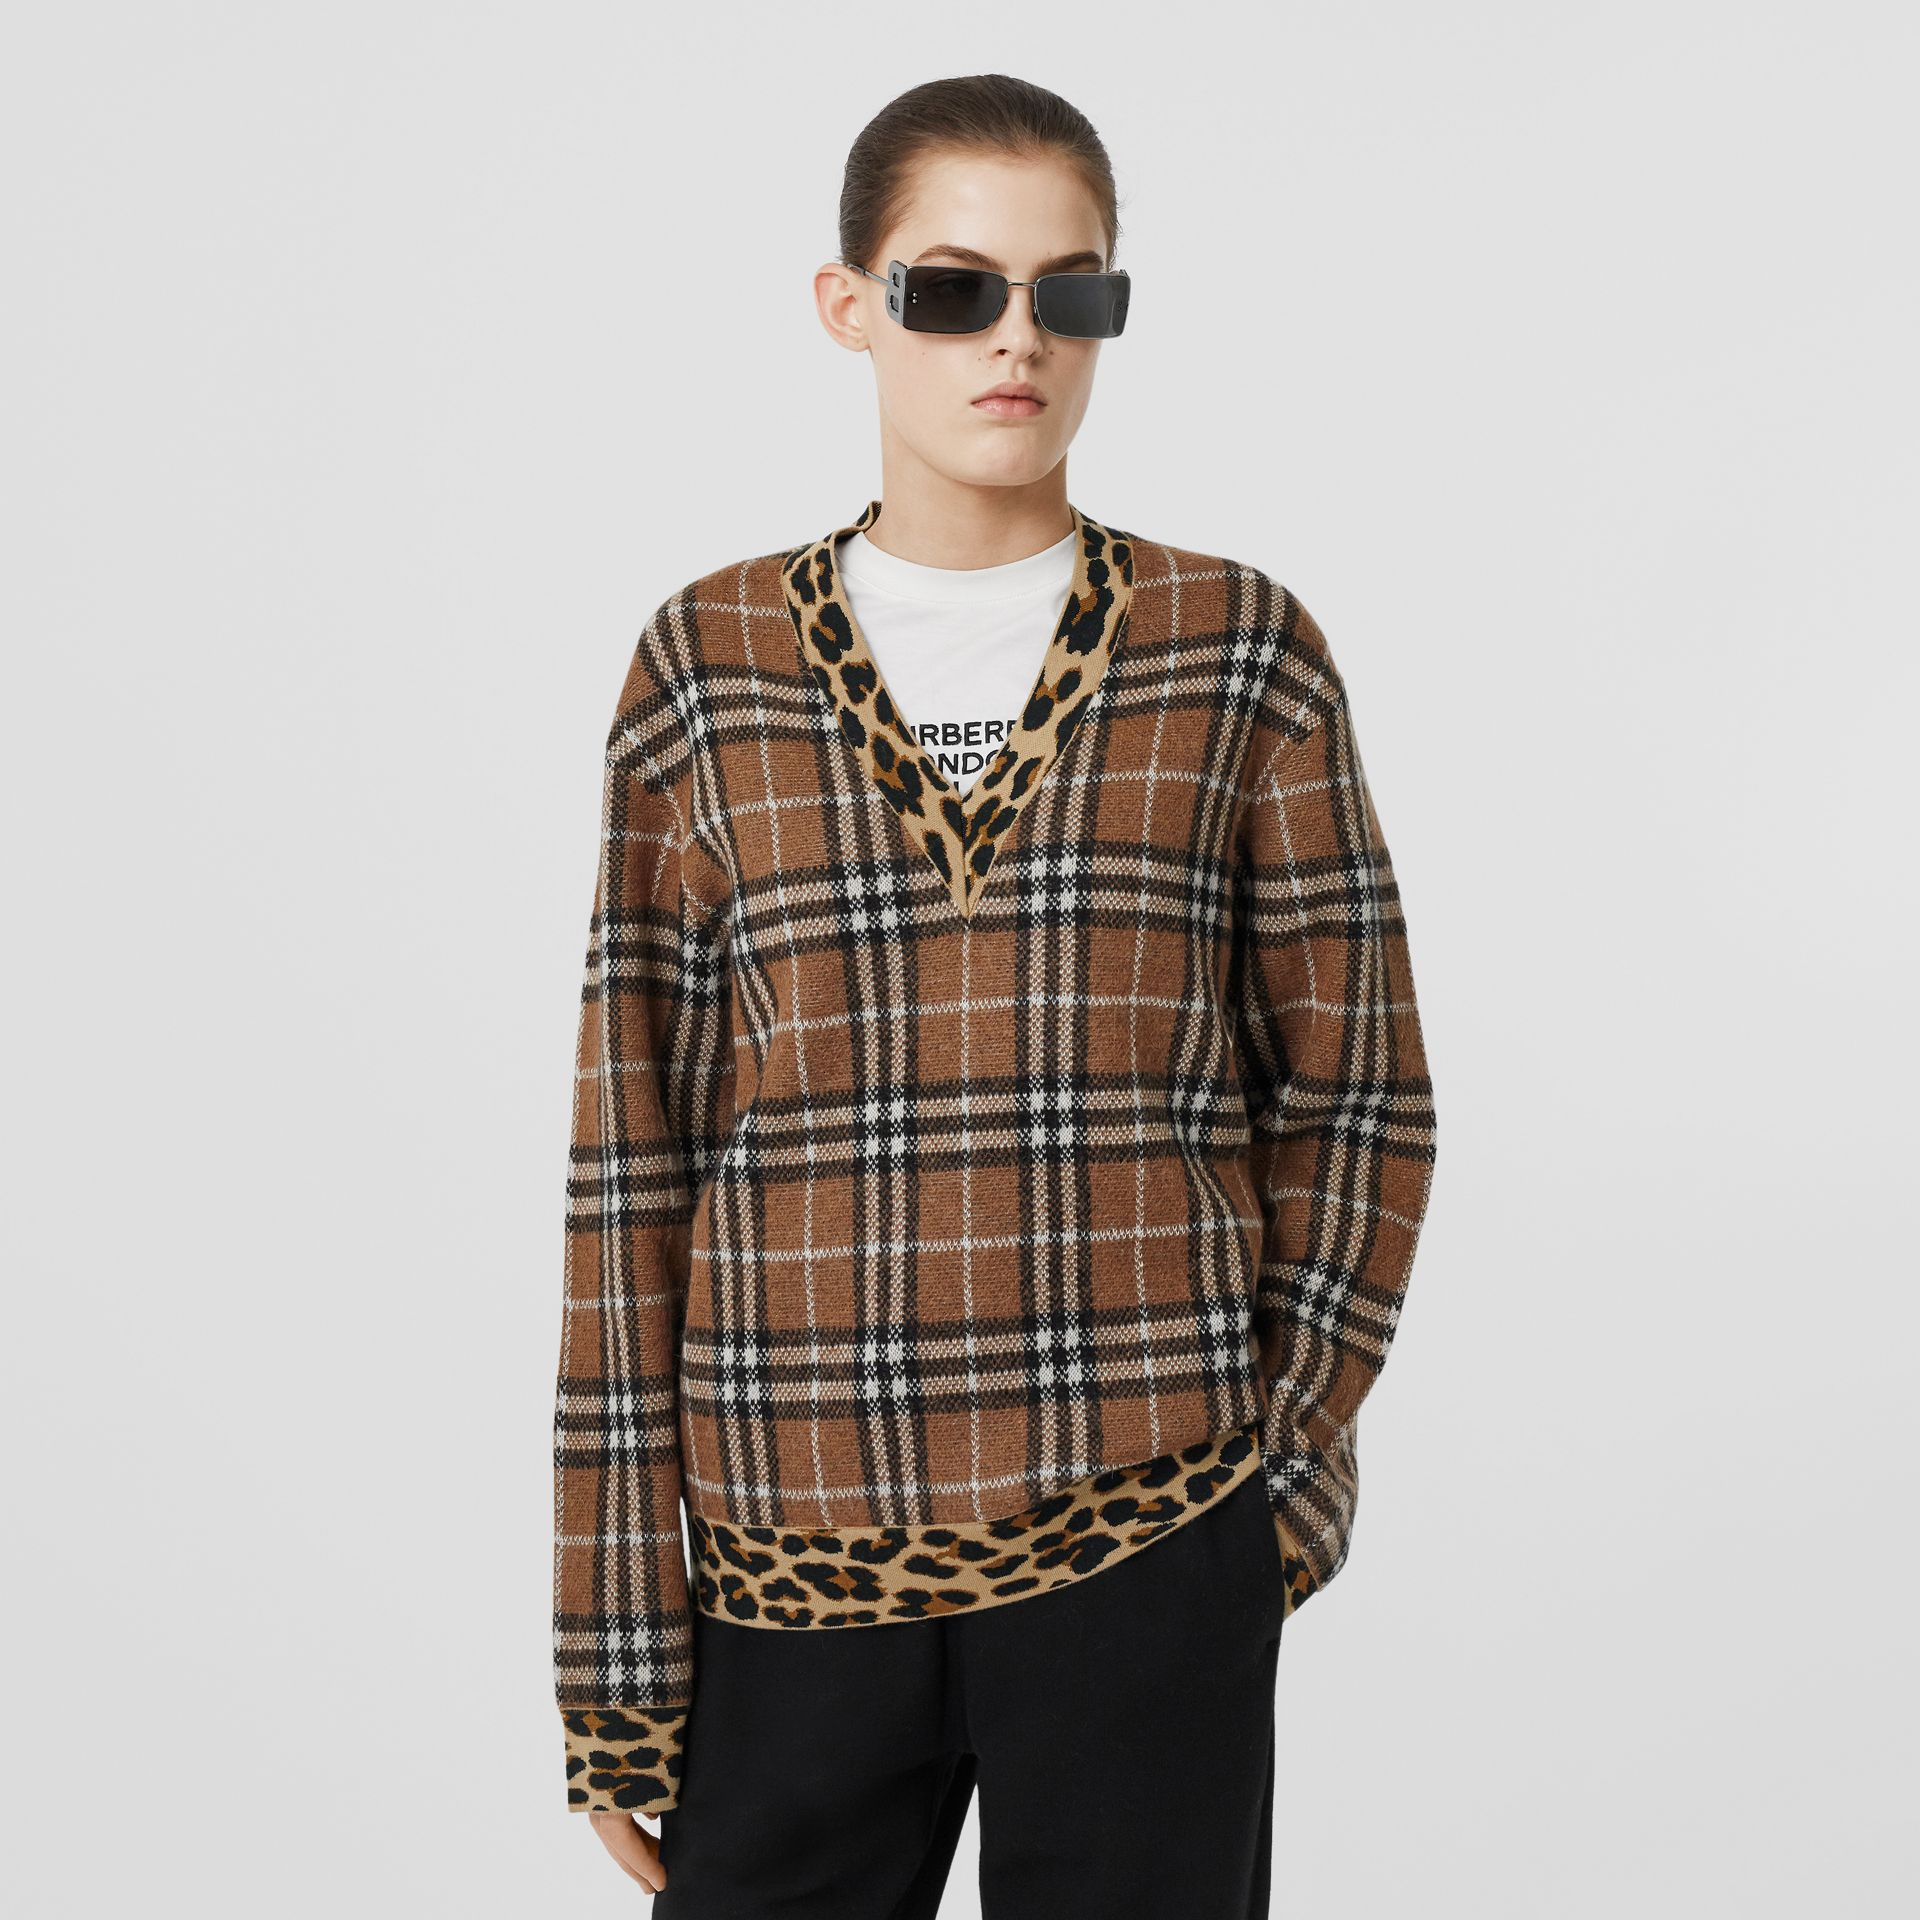 Leopard Detail Vintage Check Cashmere Blend Sweater in Archive Beige - Women | Burberry - gallery image 5